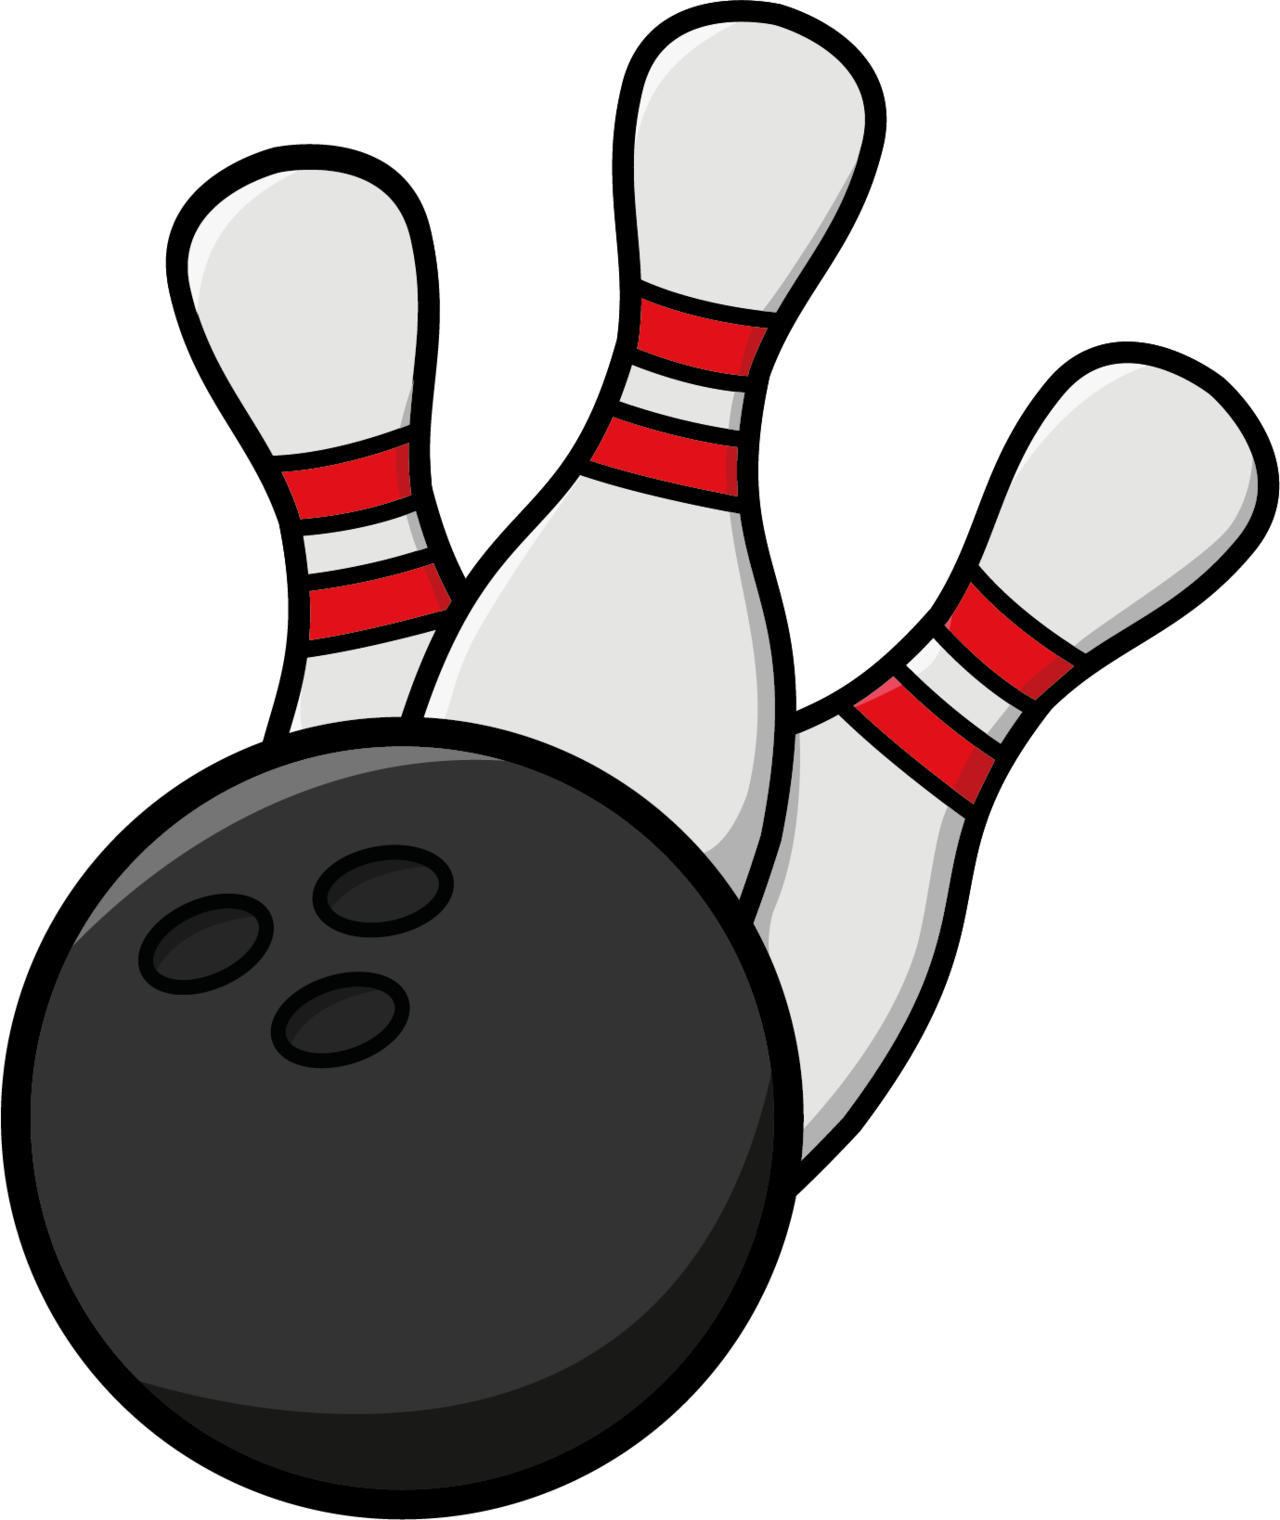 Bowling clipart png. Collection of high